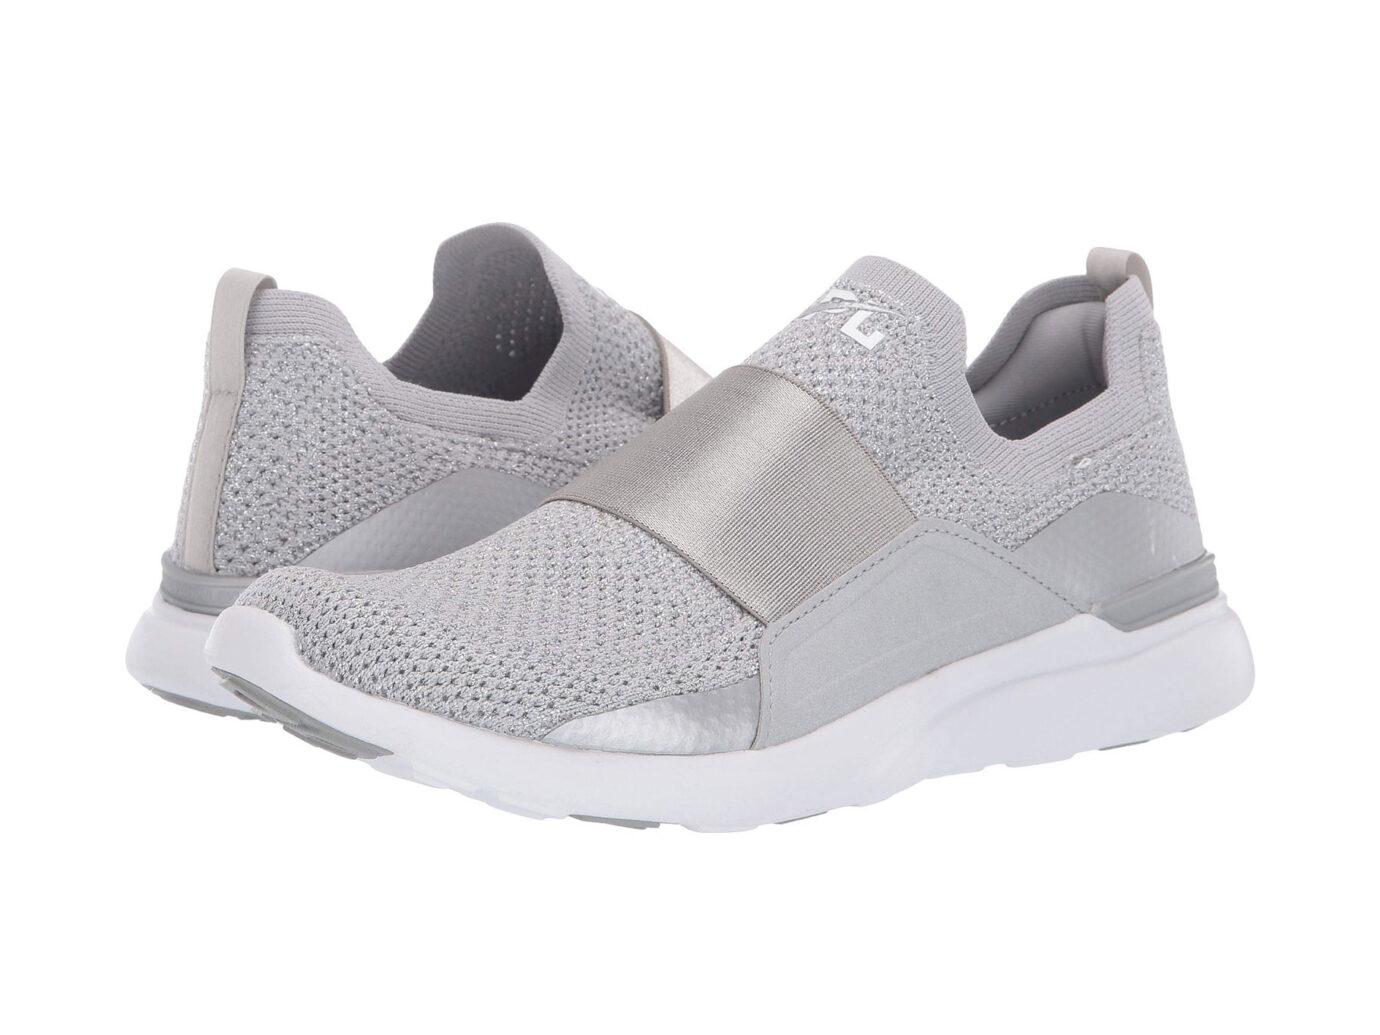 Athletic Propulsion Labs (APL) Techloom Bliss Sneakers